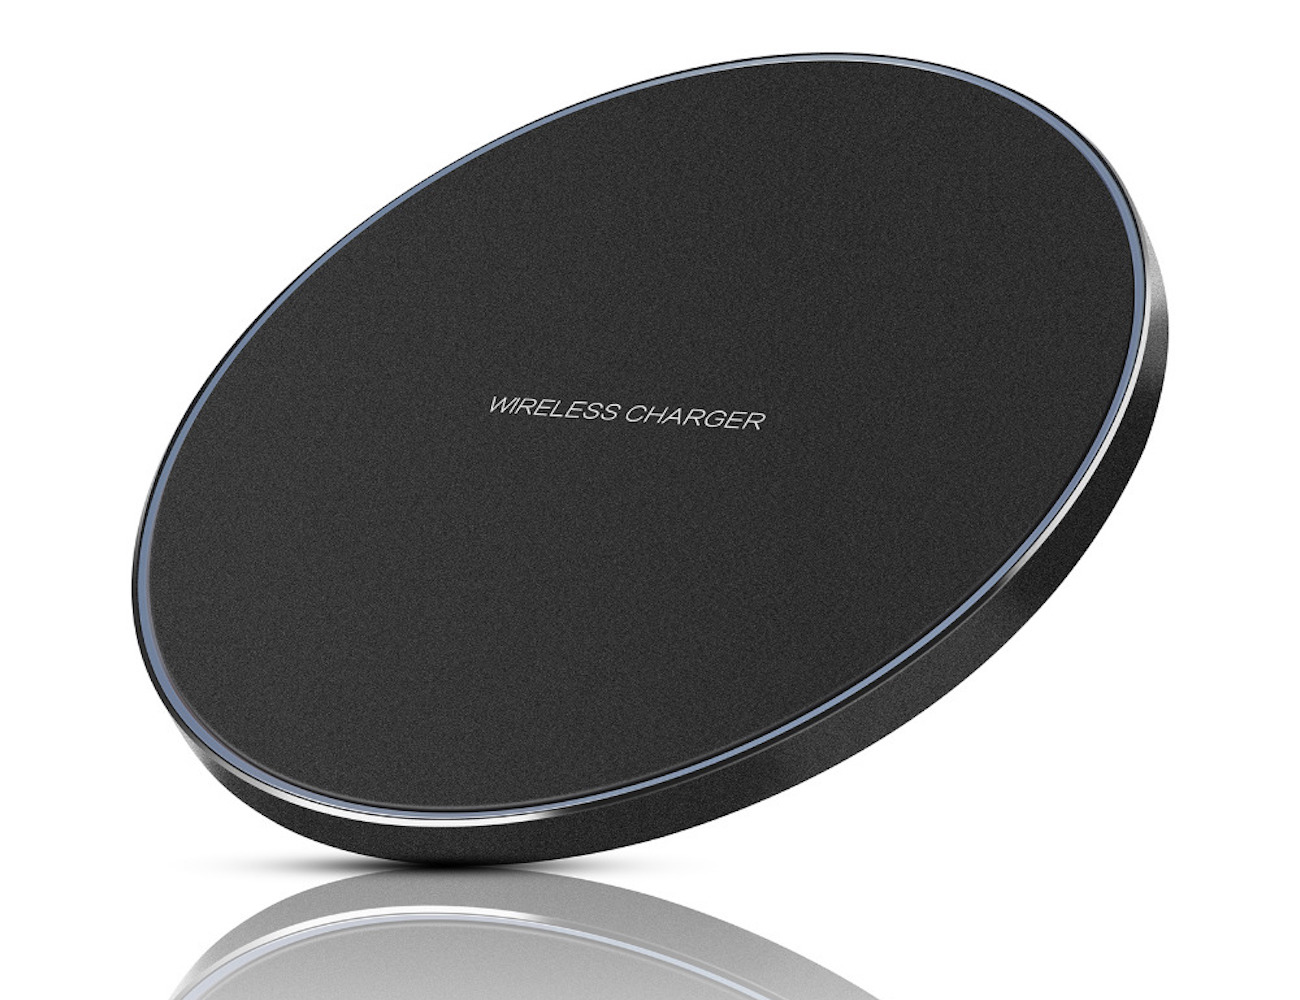 Sleek Wireless Charging Pad